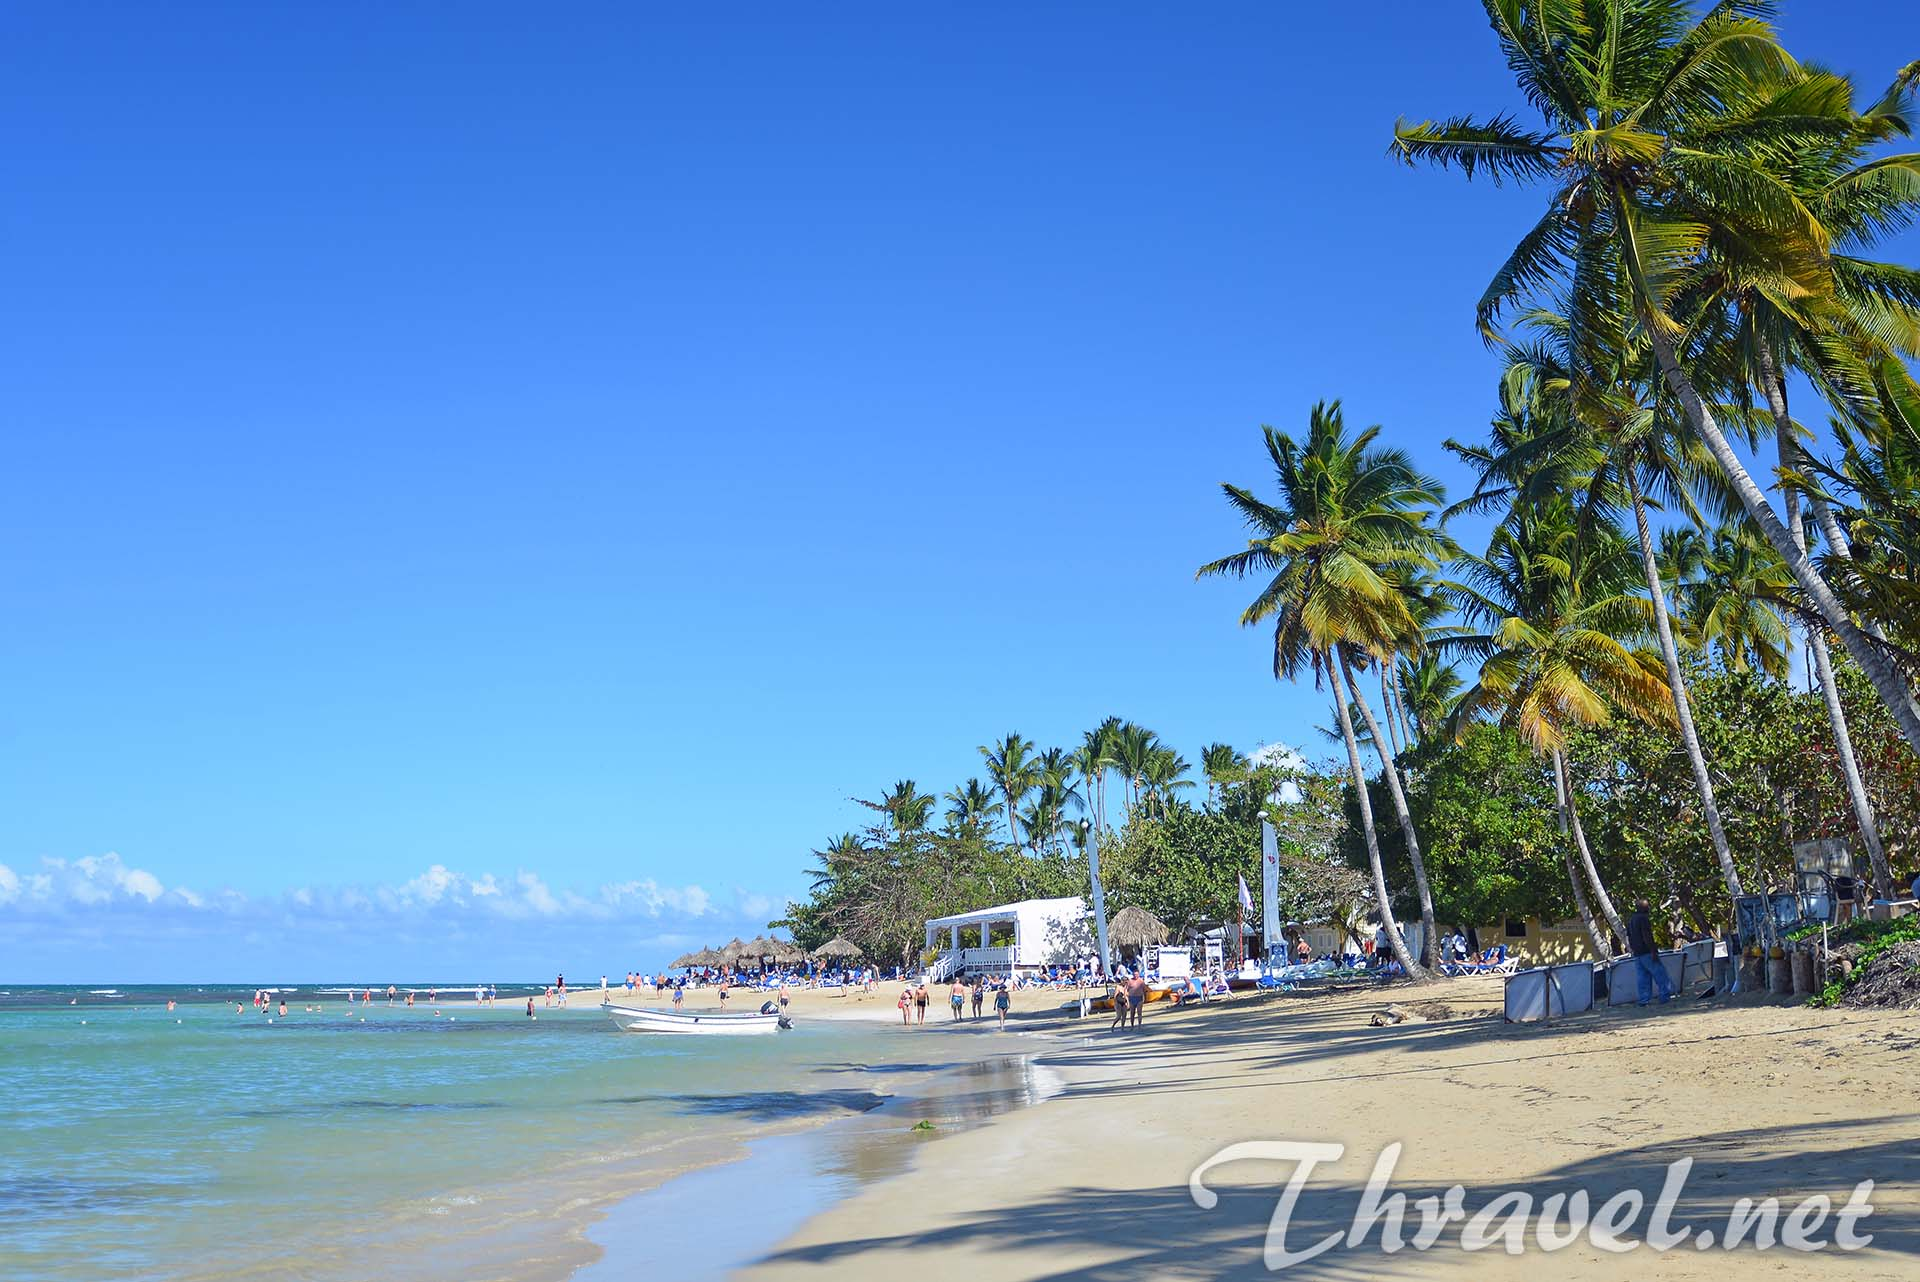 grand-bahia-principe-beach-photo